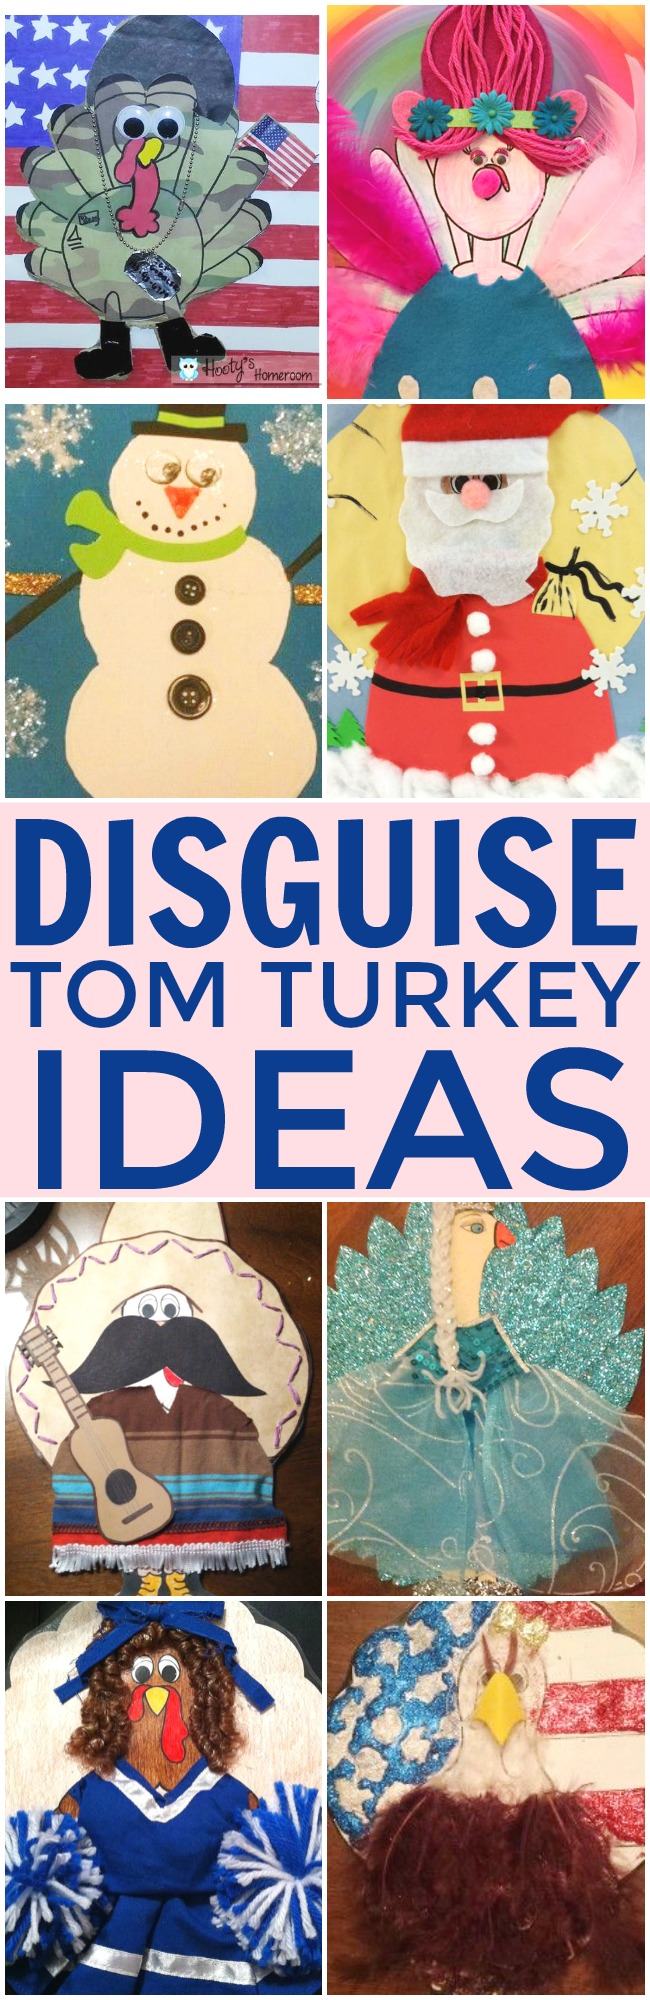 Disguise Tom Turkey | Disguise Turkey Ideas | This Girl's Life Blog